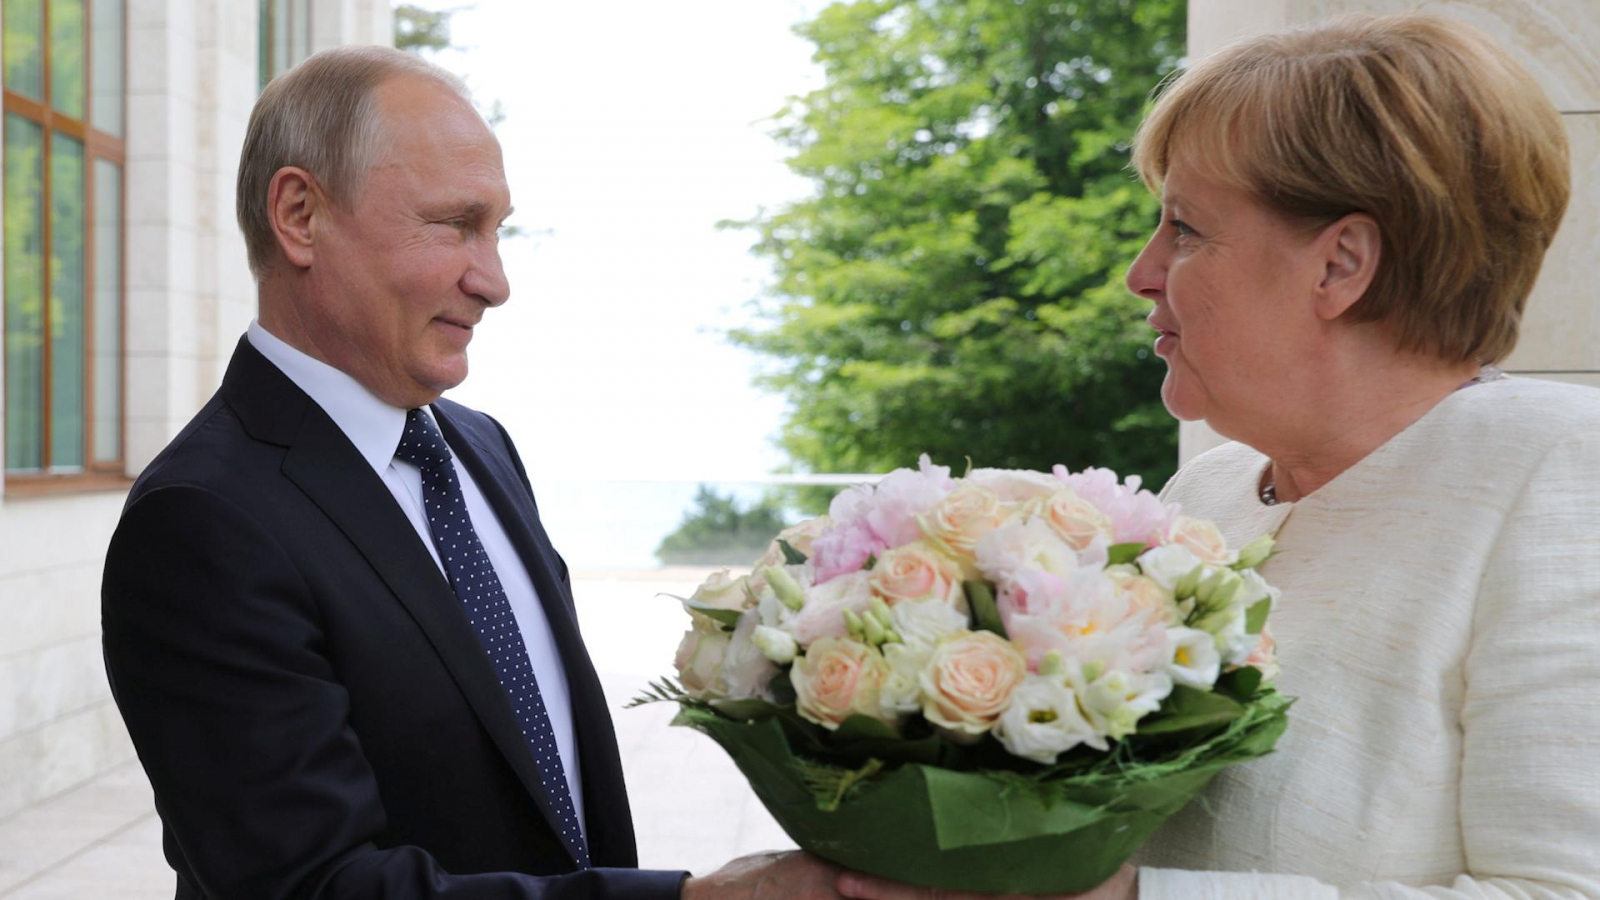 putin-greets-visiting-merkel-with-a-bouquet-of-flowers